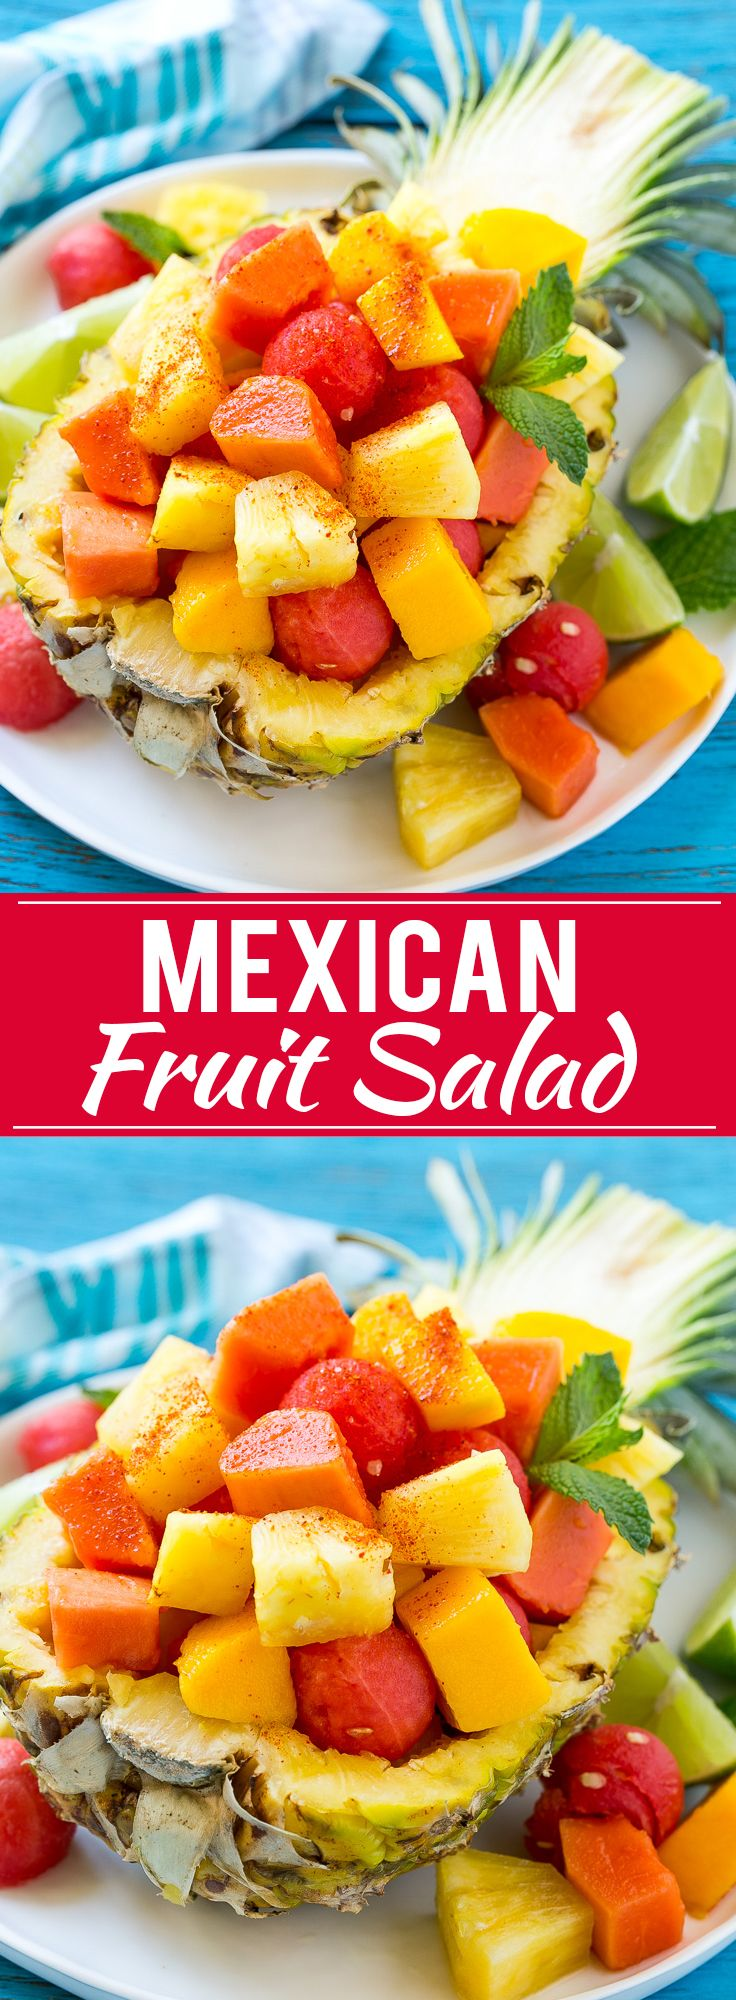 This recipe for Mexican fruit salad is a blend of tropical fruit topped with chili lime seasoning - a sweet and savory delight that everyone will want seconds of!